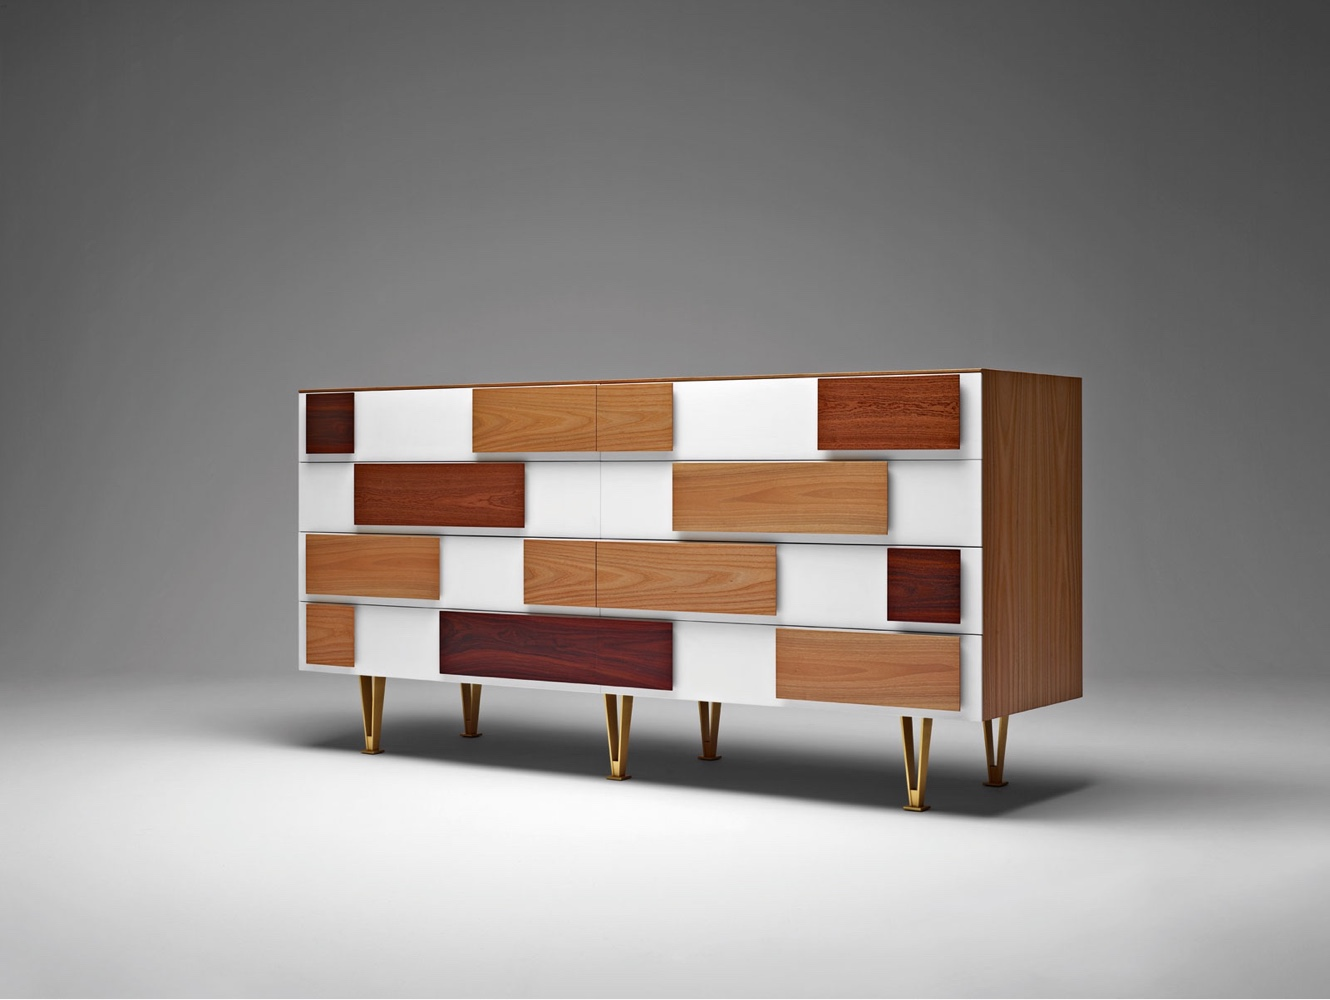 Chest of drawers D.655.1 D.655.2 by Gio Ponti. Designed in several versions between 1952 and 1955, this new version was produced using original drawings from the Gio Ponti Archives. Image © Molteni & C S.P.A.